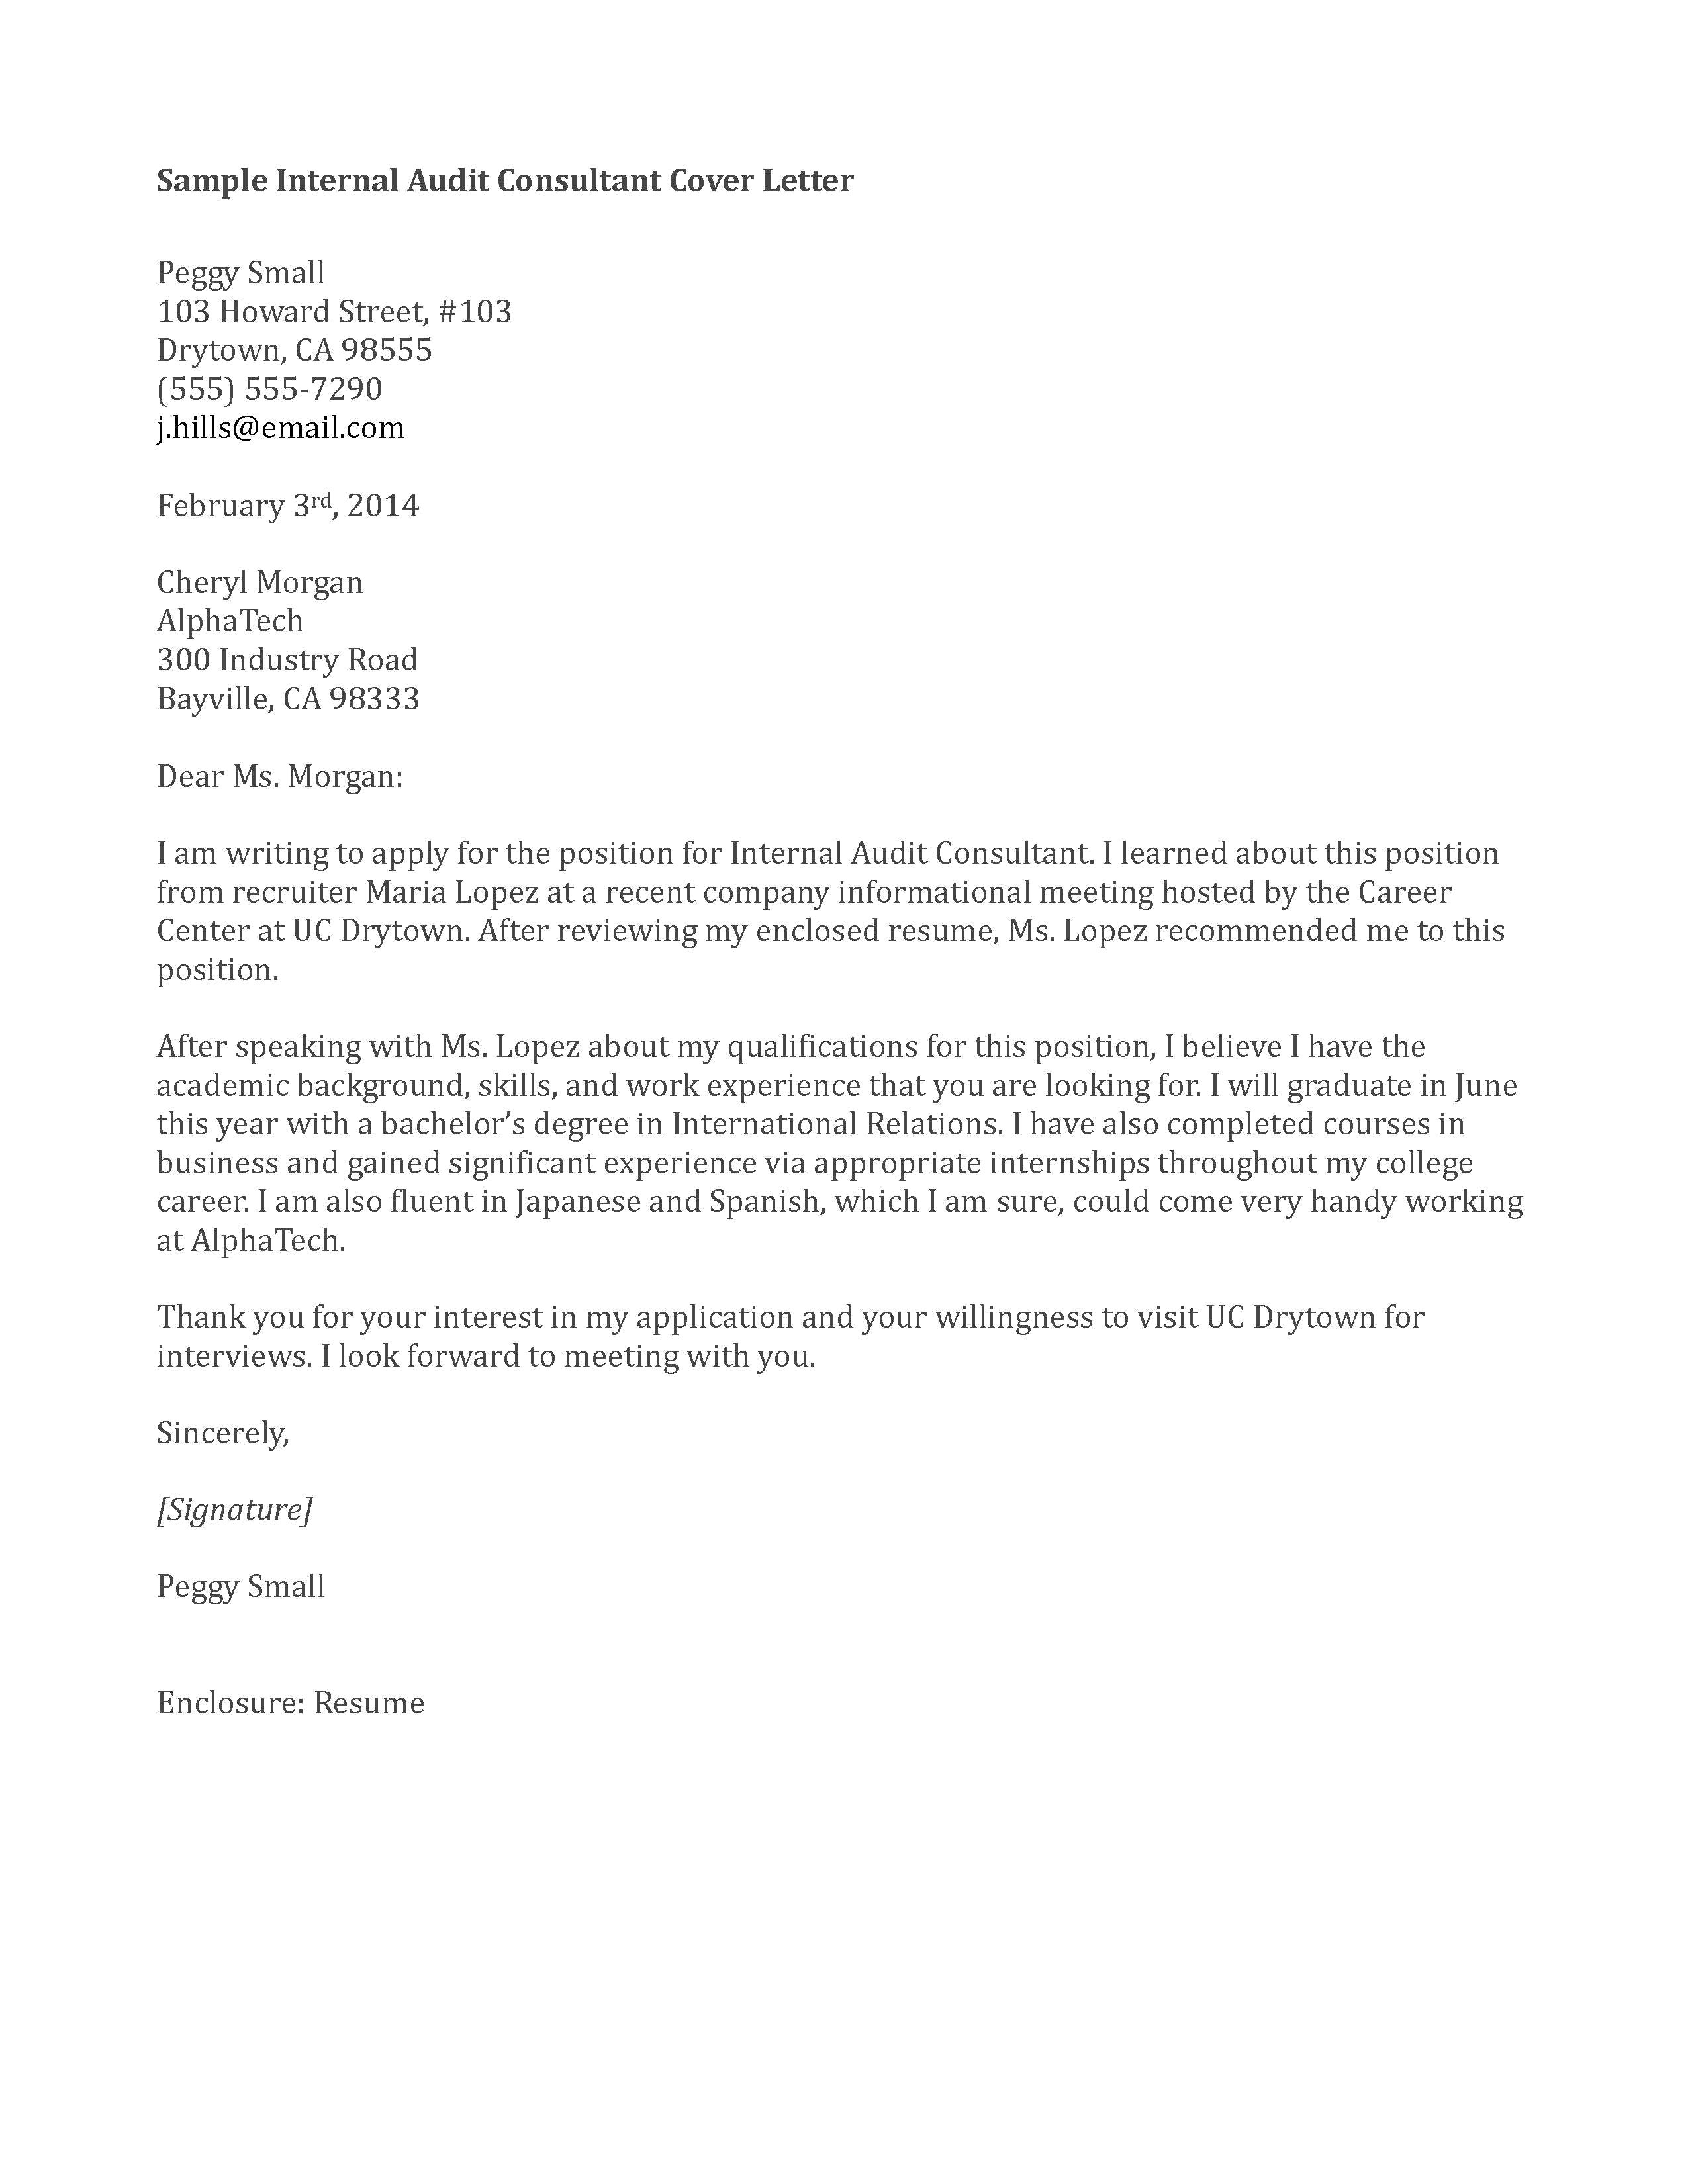 loan consultant cover letter